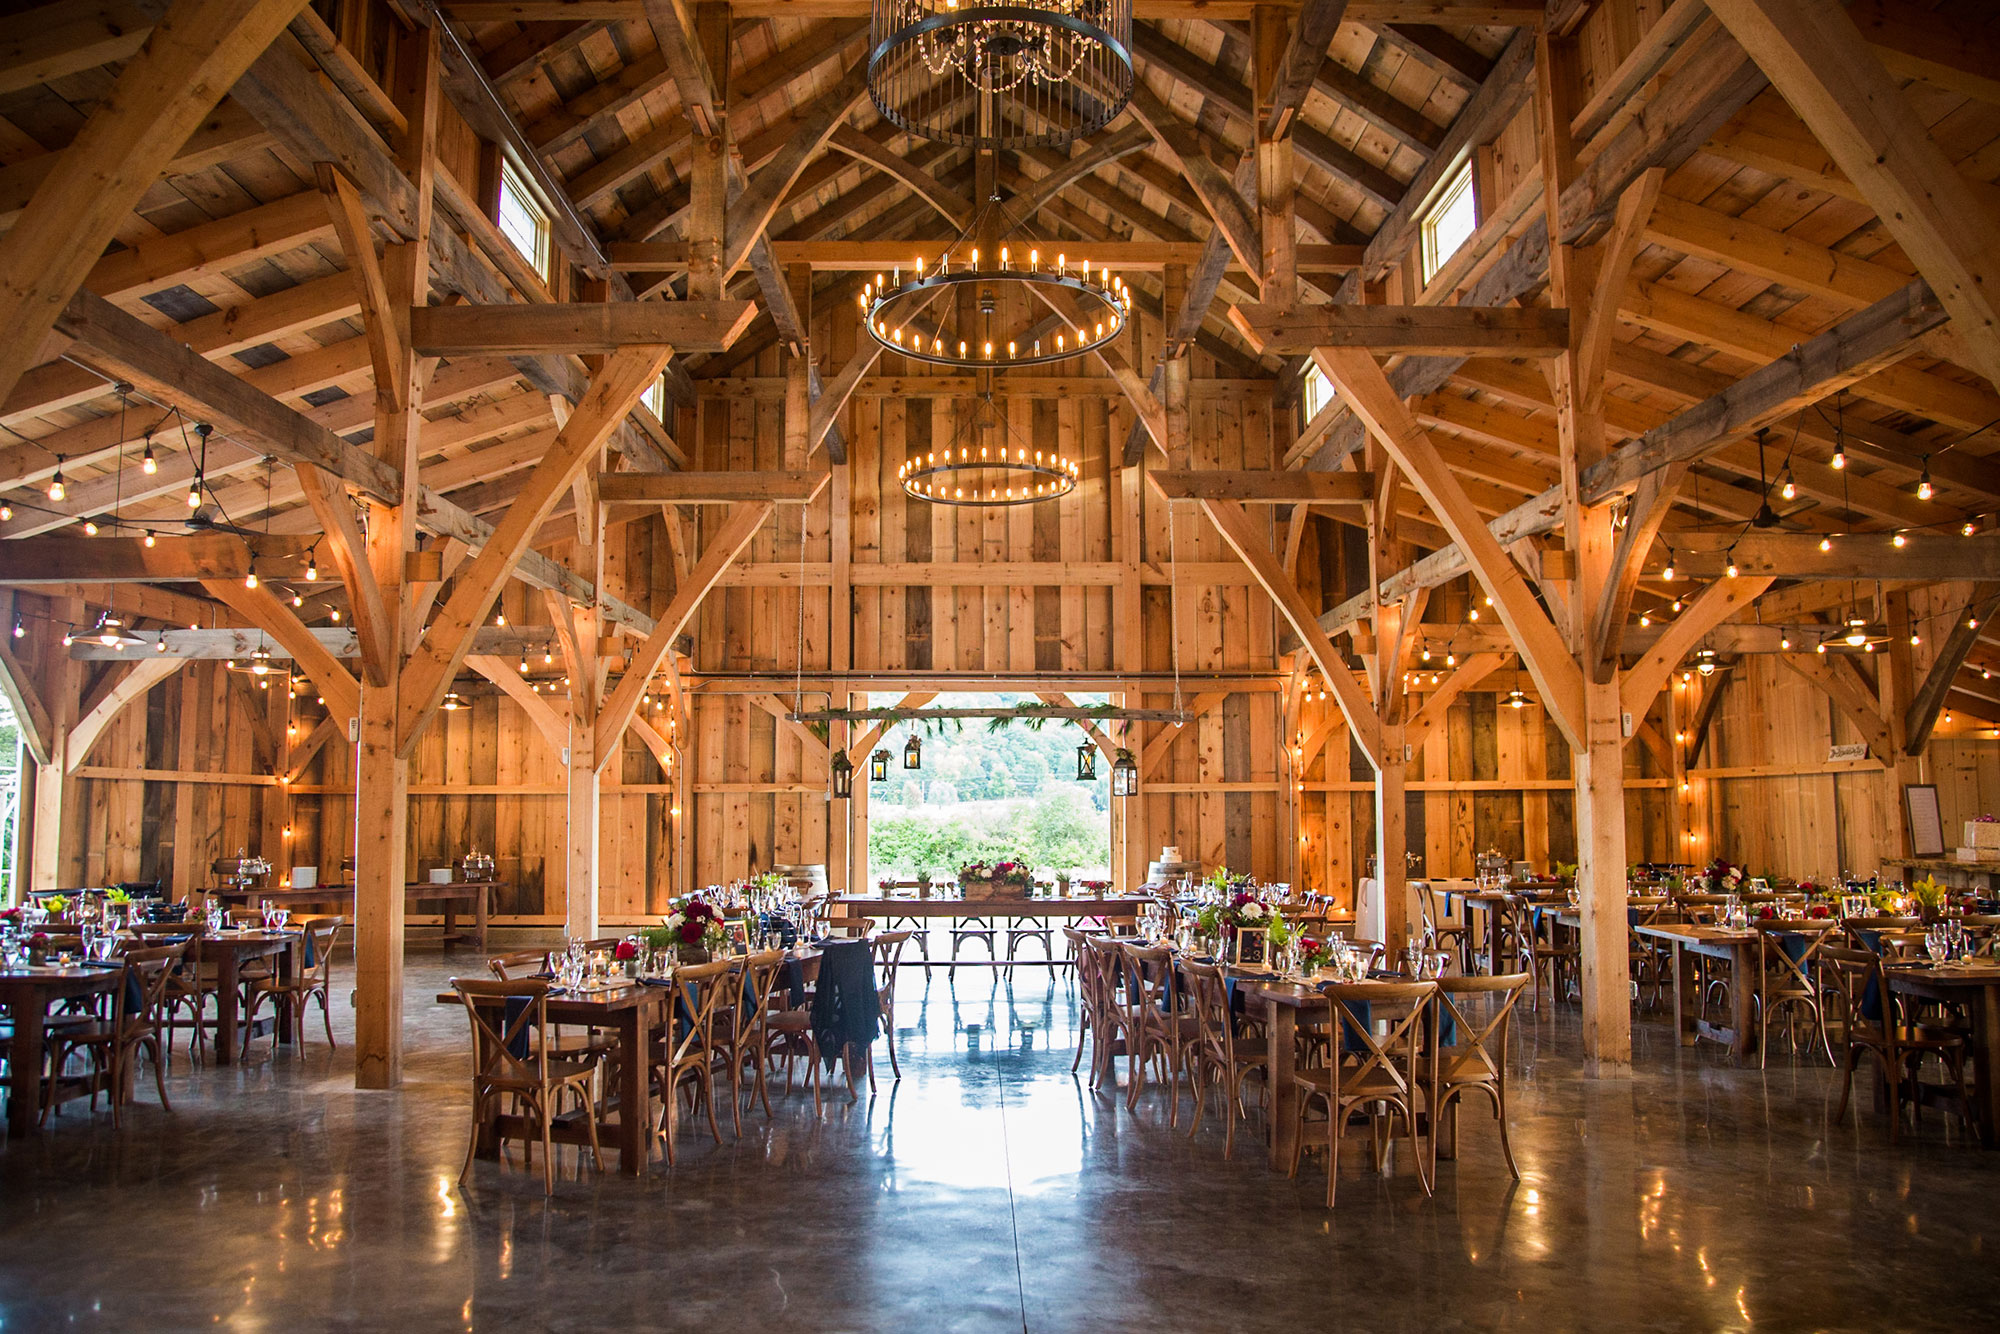 grand_barn_wedding_veneue_adirondacks_upstate_ny.jpg